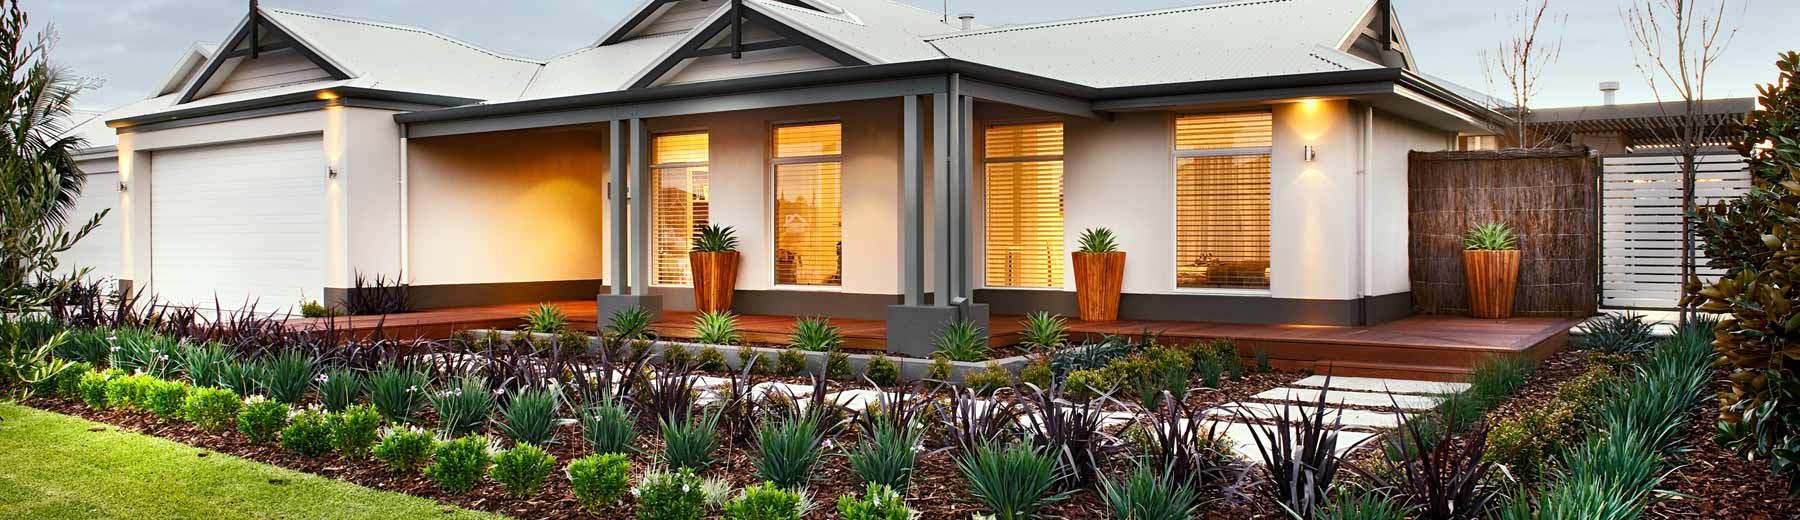 gardening and landscaping jobs com landscape gardener perth josael